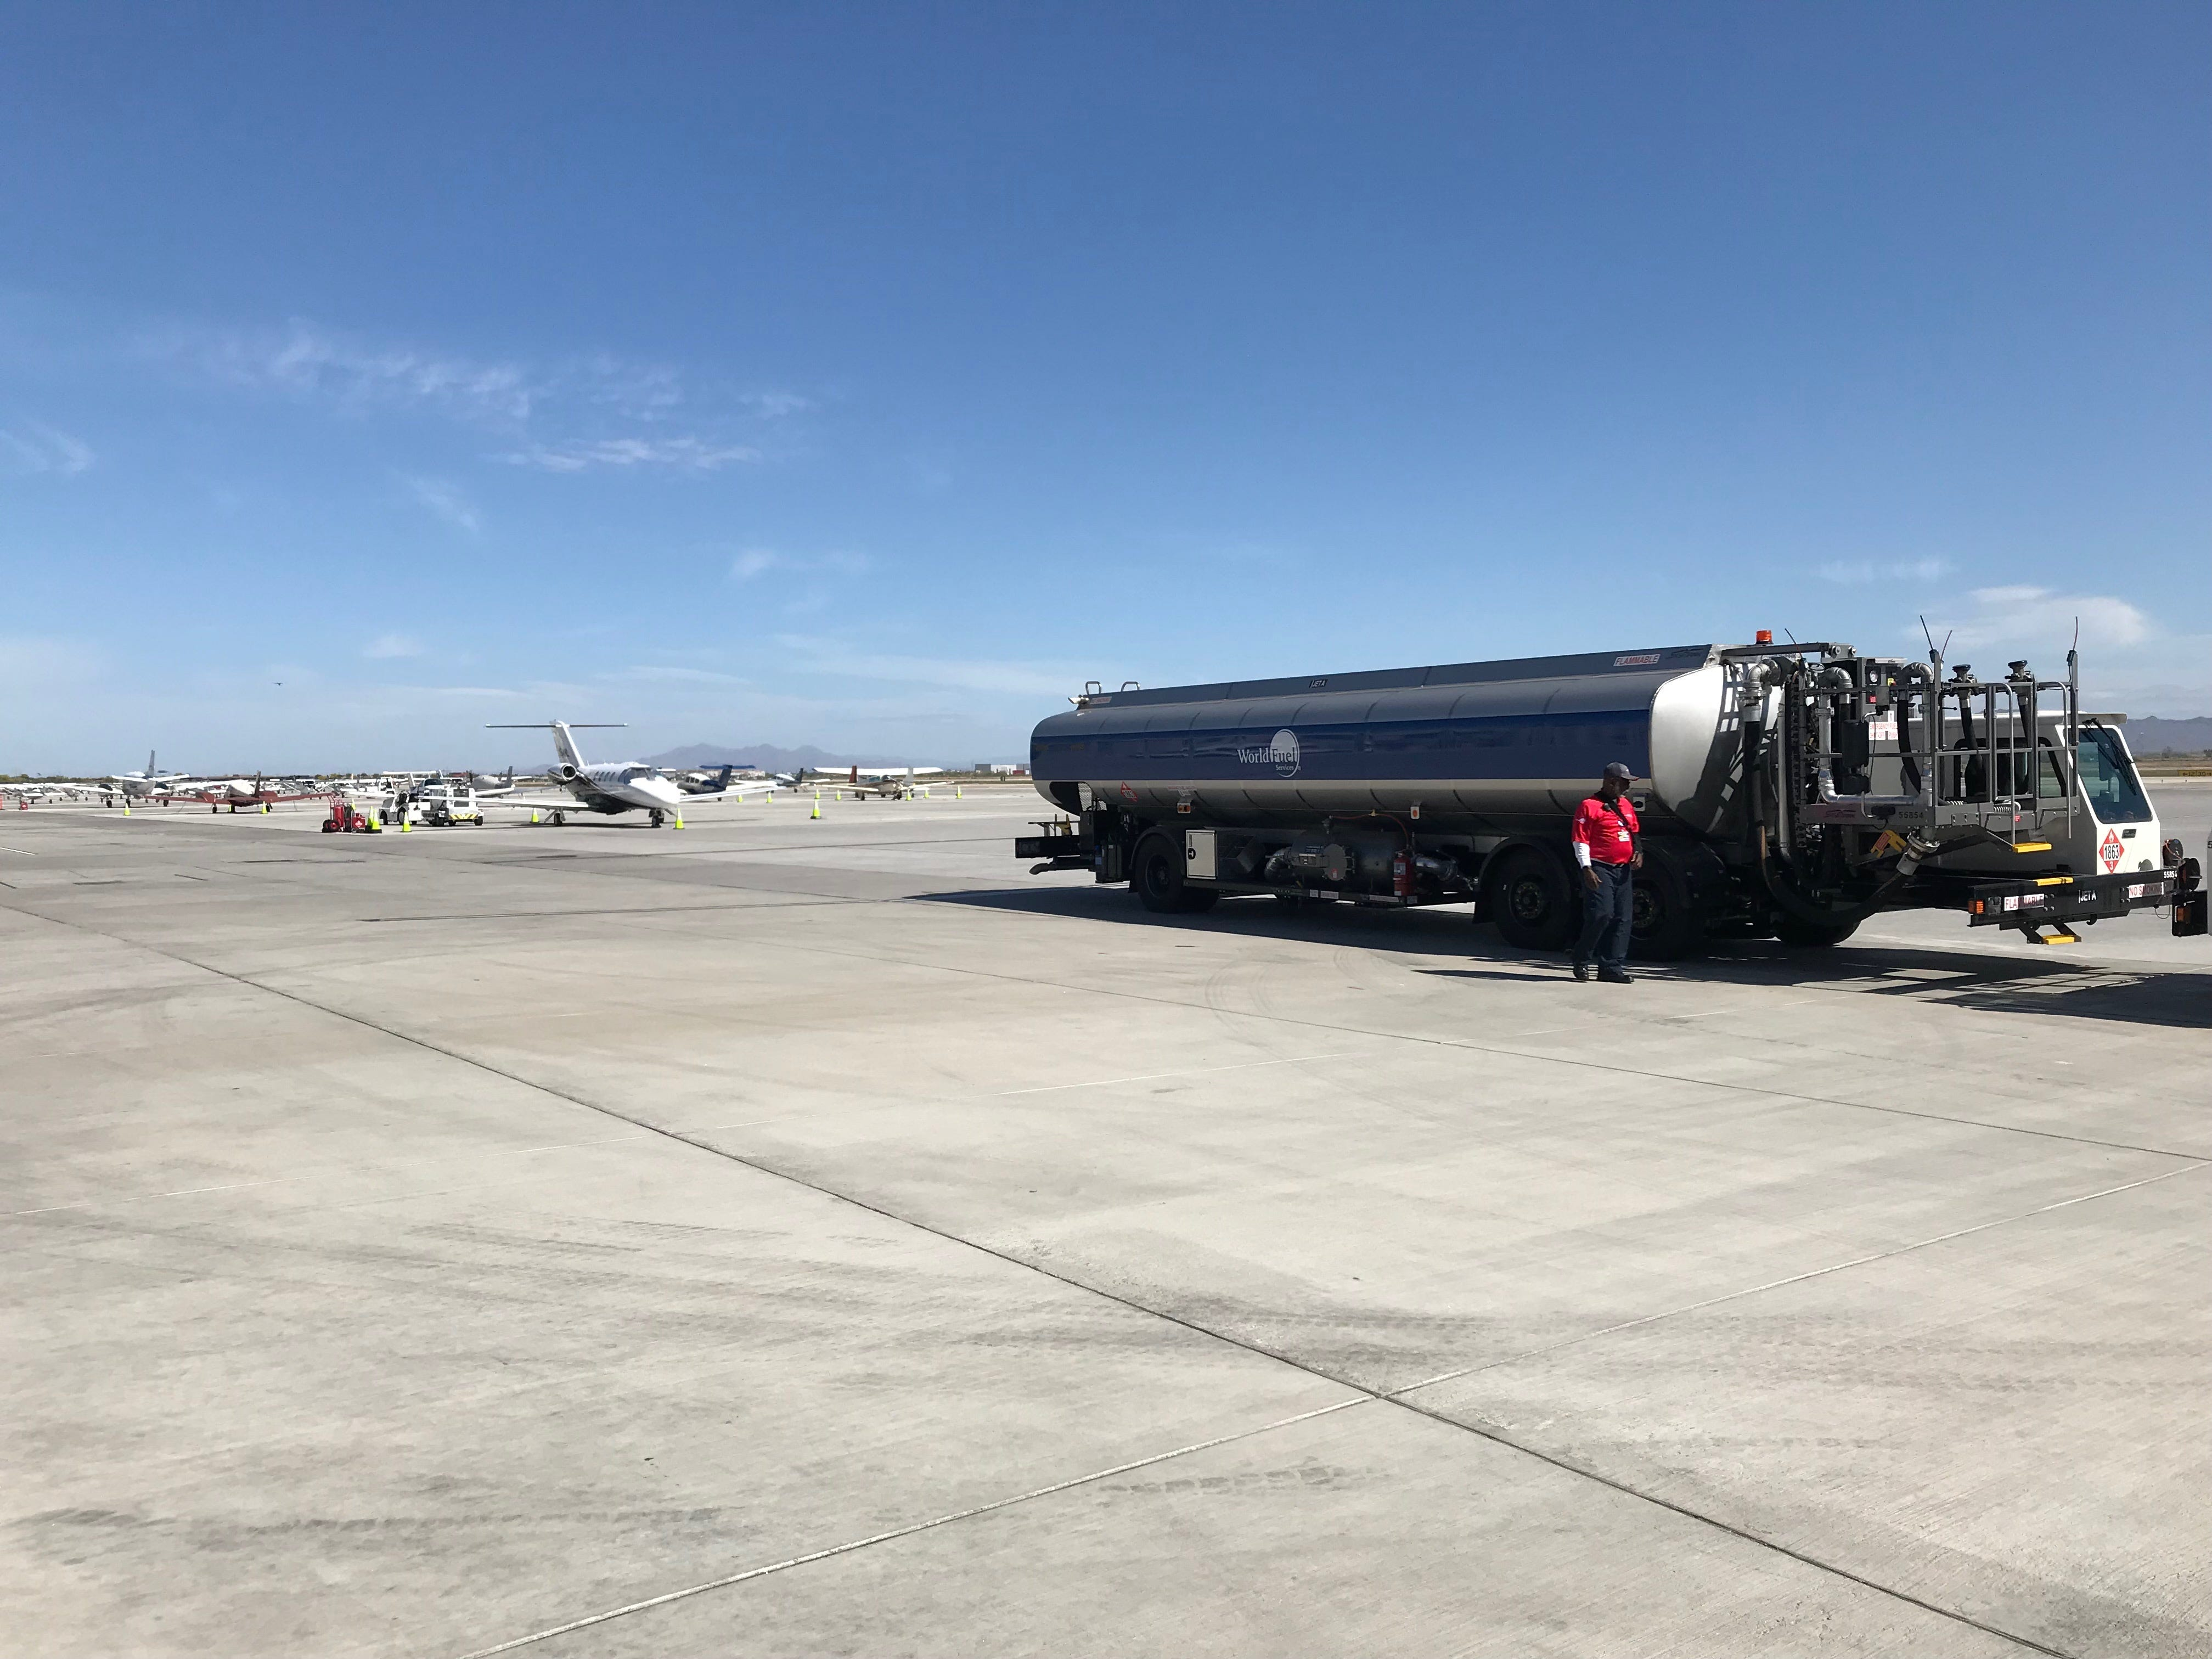 One of the trucks used to fuel aircraft at Gateway Aviation Services. Phoenix-Mesa Gateway Airport pumps more than 17 million gallons of fuel a year to commercial and private aircraft.